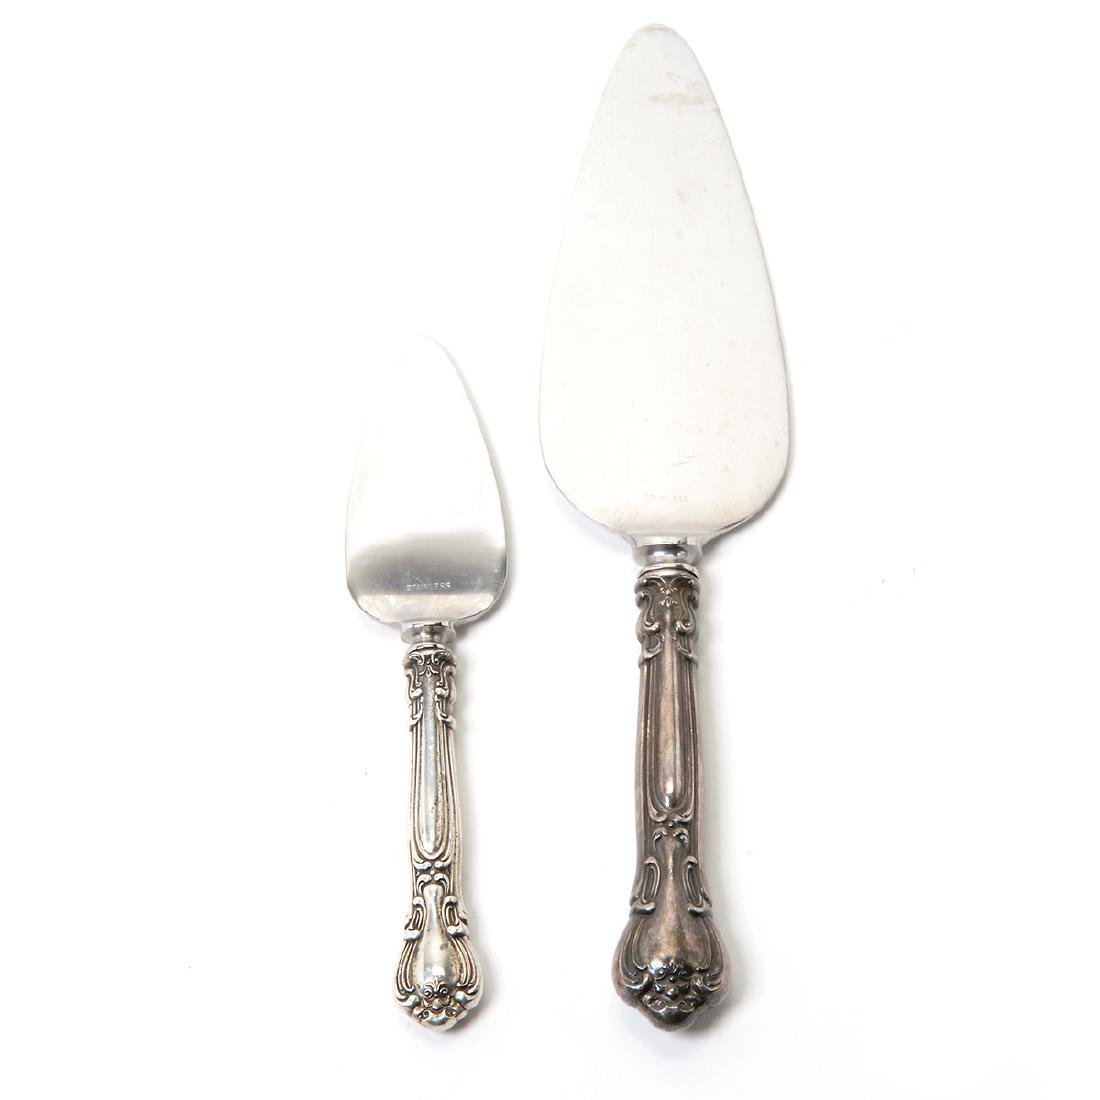 "Gorham ""Chantilly"" Sterling Flatware Service - 8"